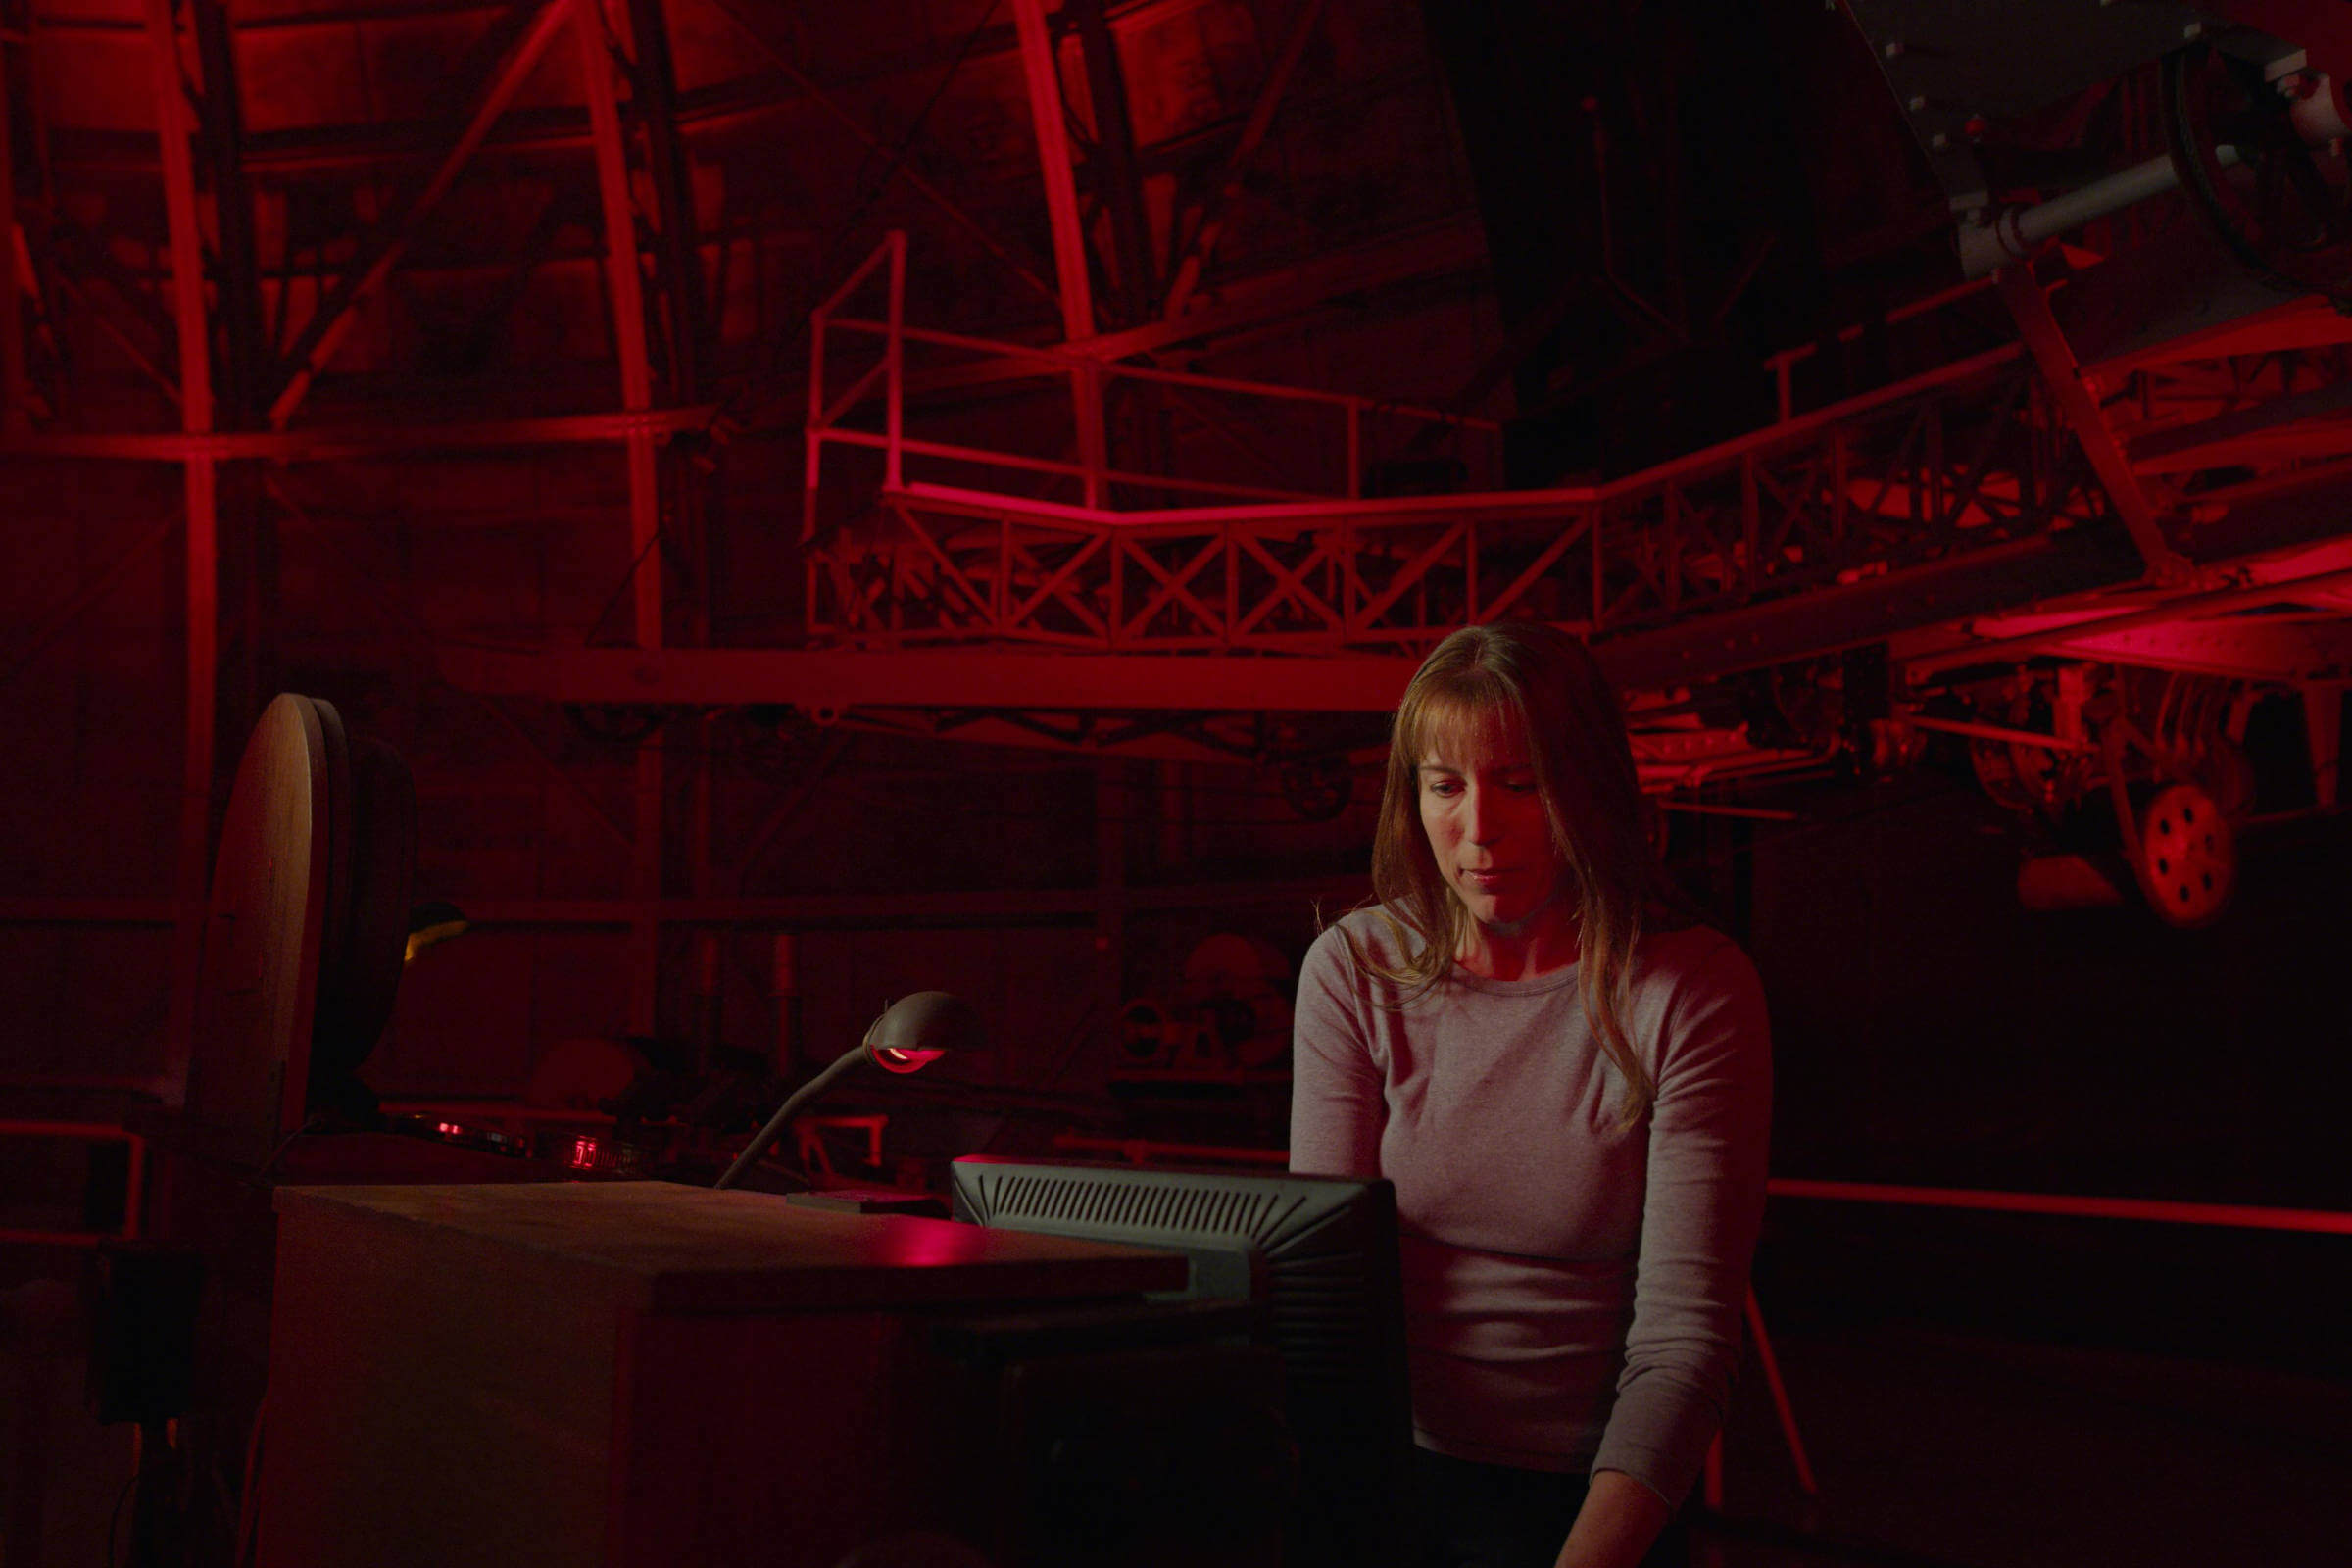 Kelly Fast PhD, of NASA's Planetary Coordination Office, hunts for asteroids from the Mt. Wilson Observatory telescope in Los Angeles. Discover why finding asteroids before they find us is critical.